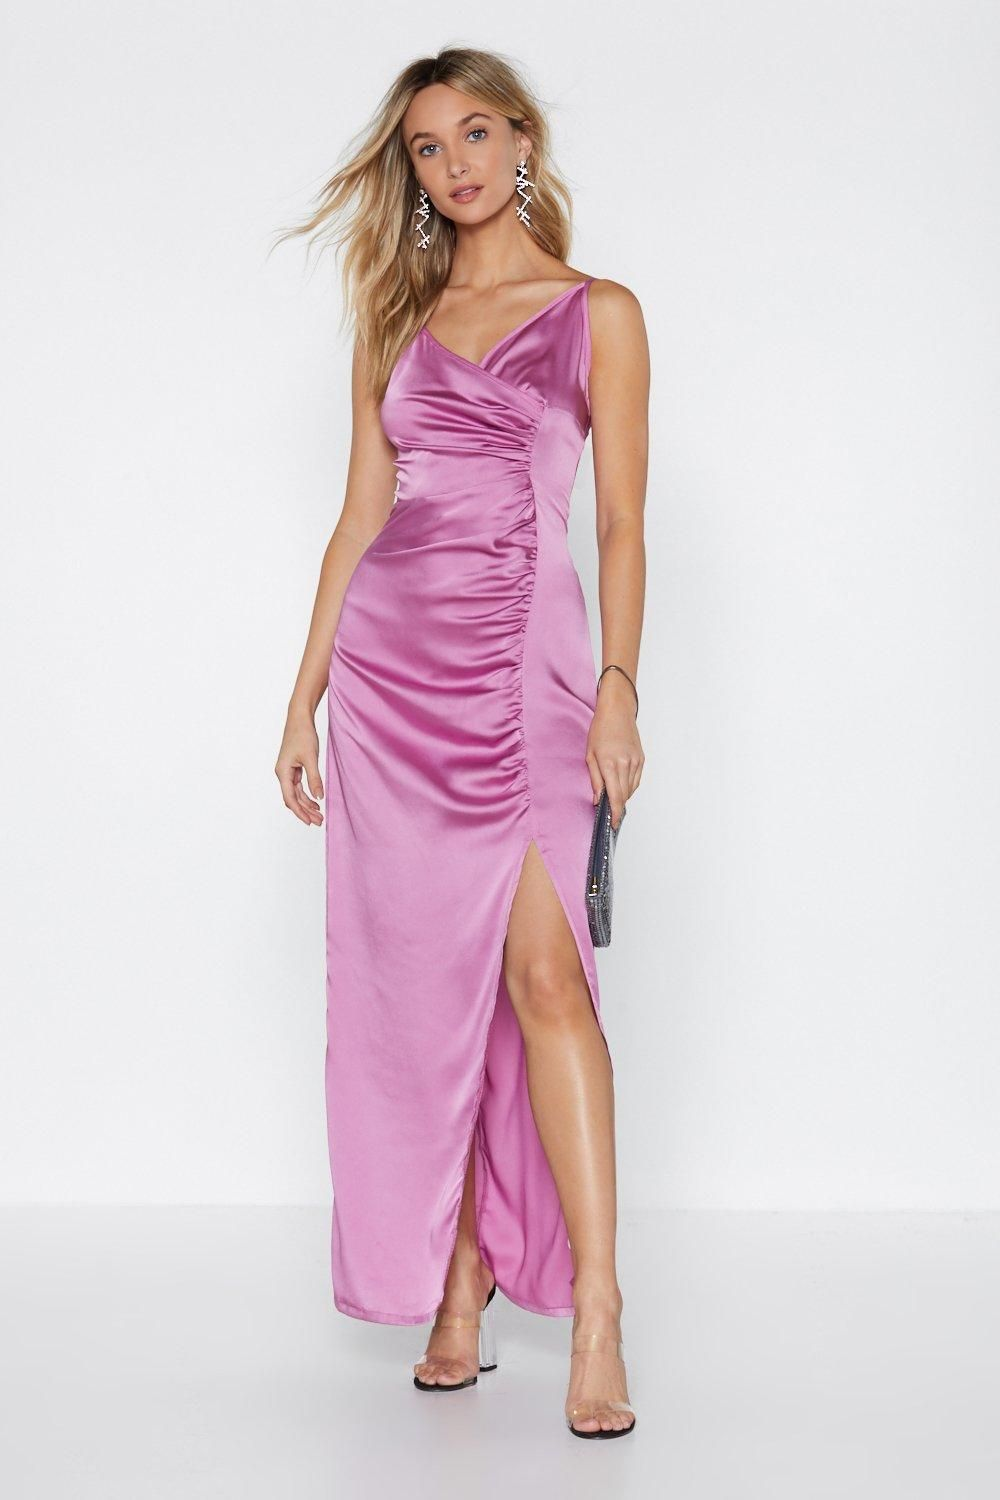 e5430bf6d3cf Long Modest Prom Dresses Under $100 - PostParc